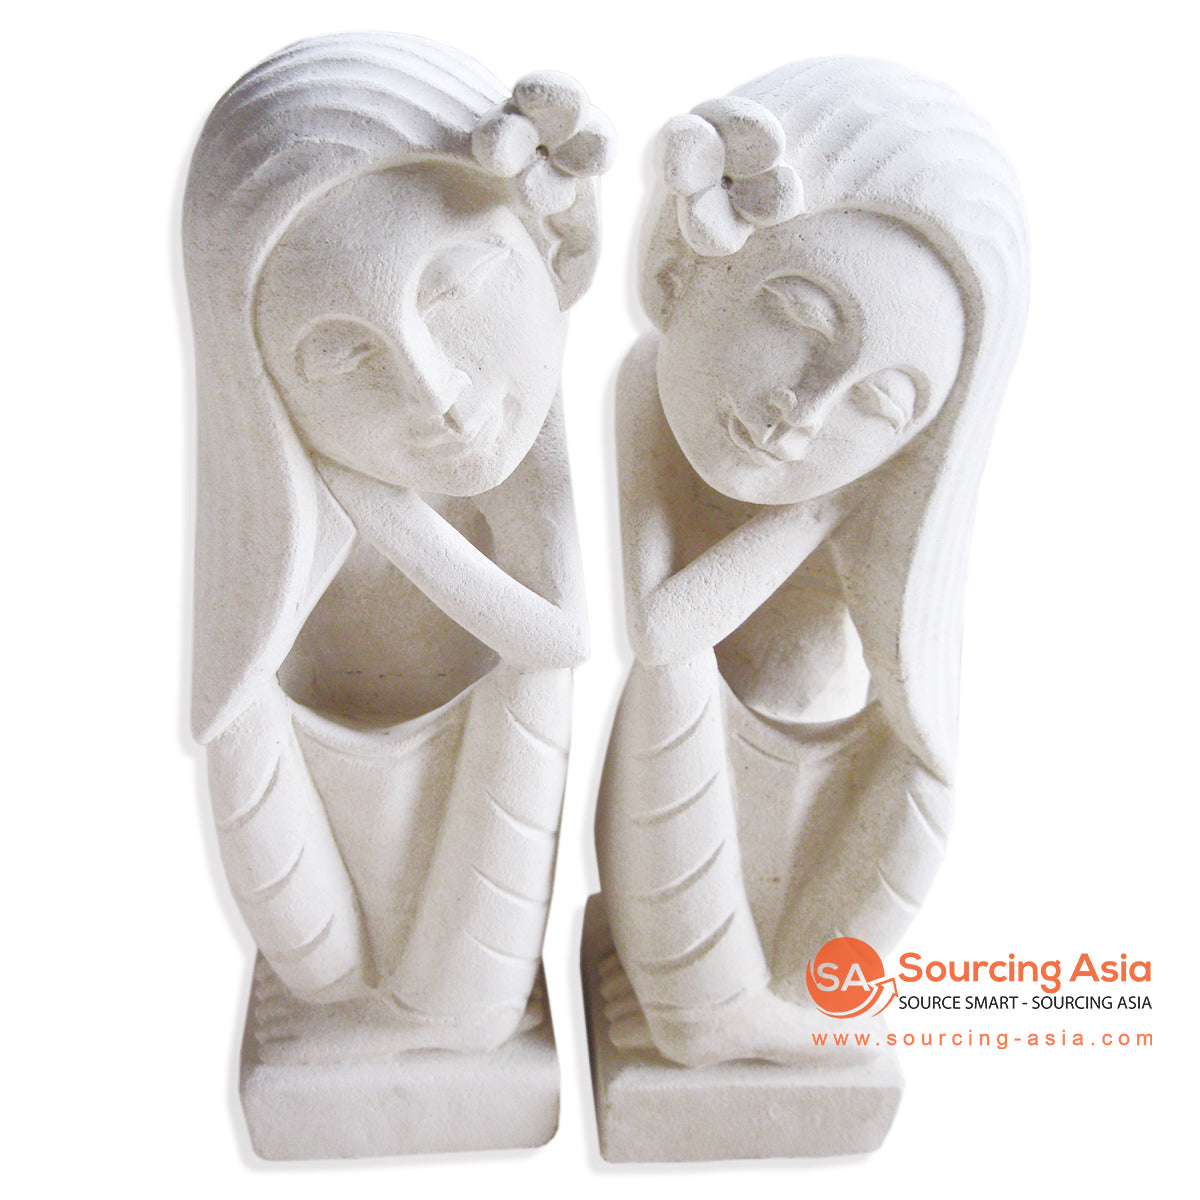 MHB136-20 SET OF 2 DREAMING LADY LONG HAIR STATUE